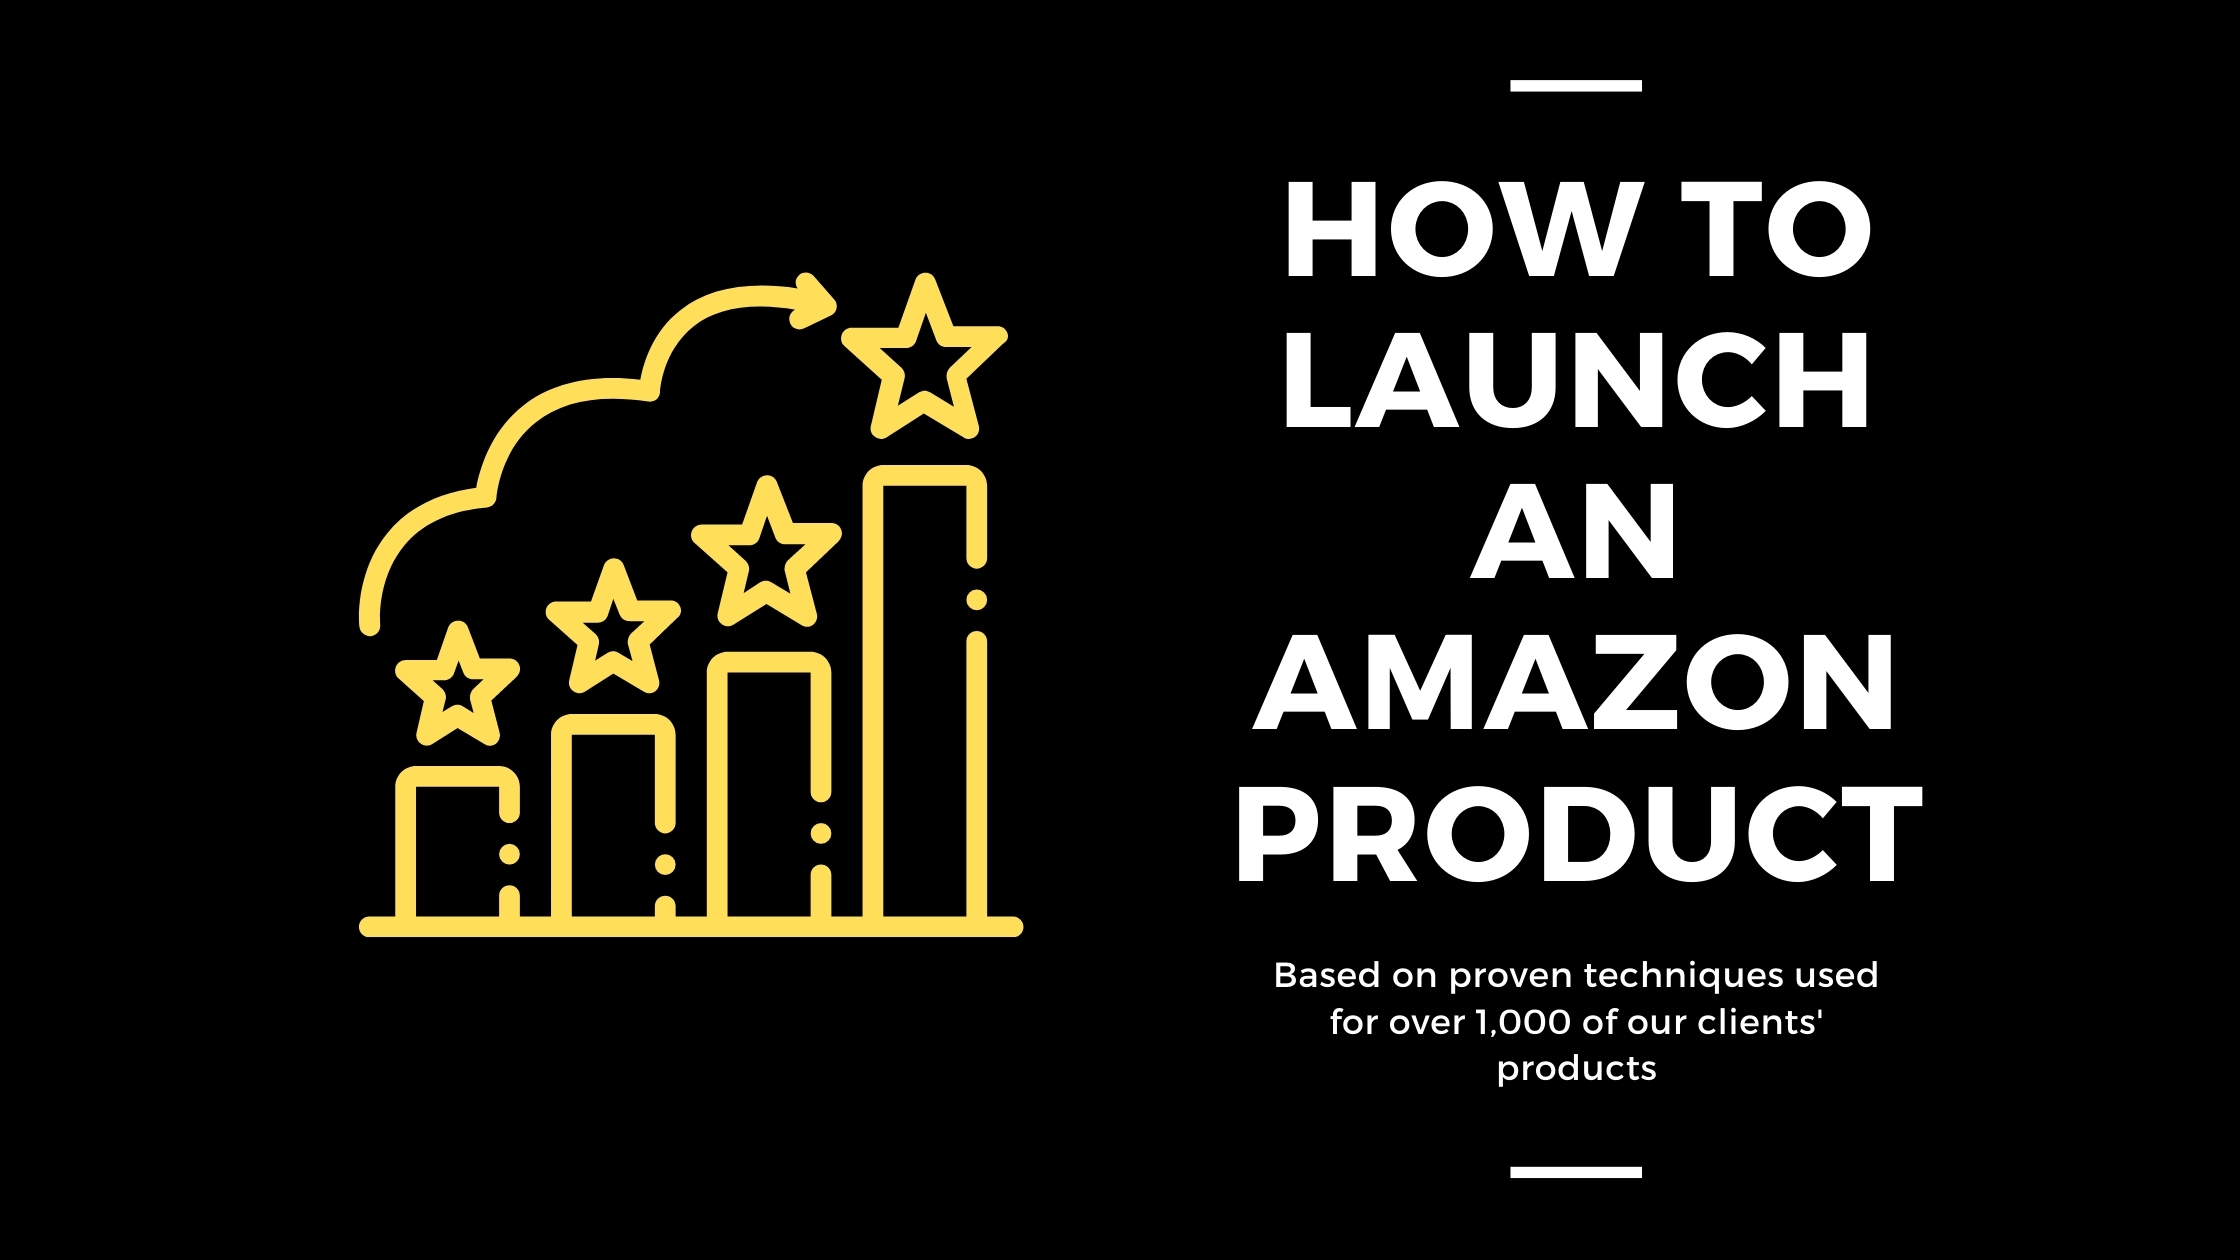 how to launch an amazon product